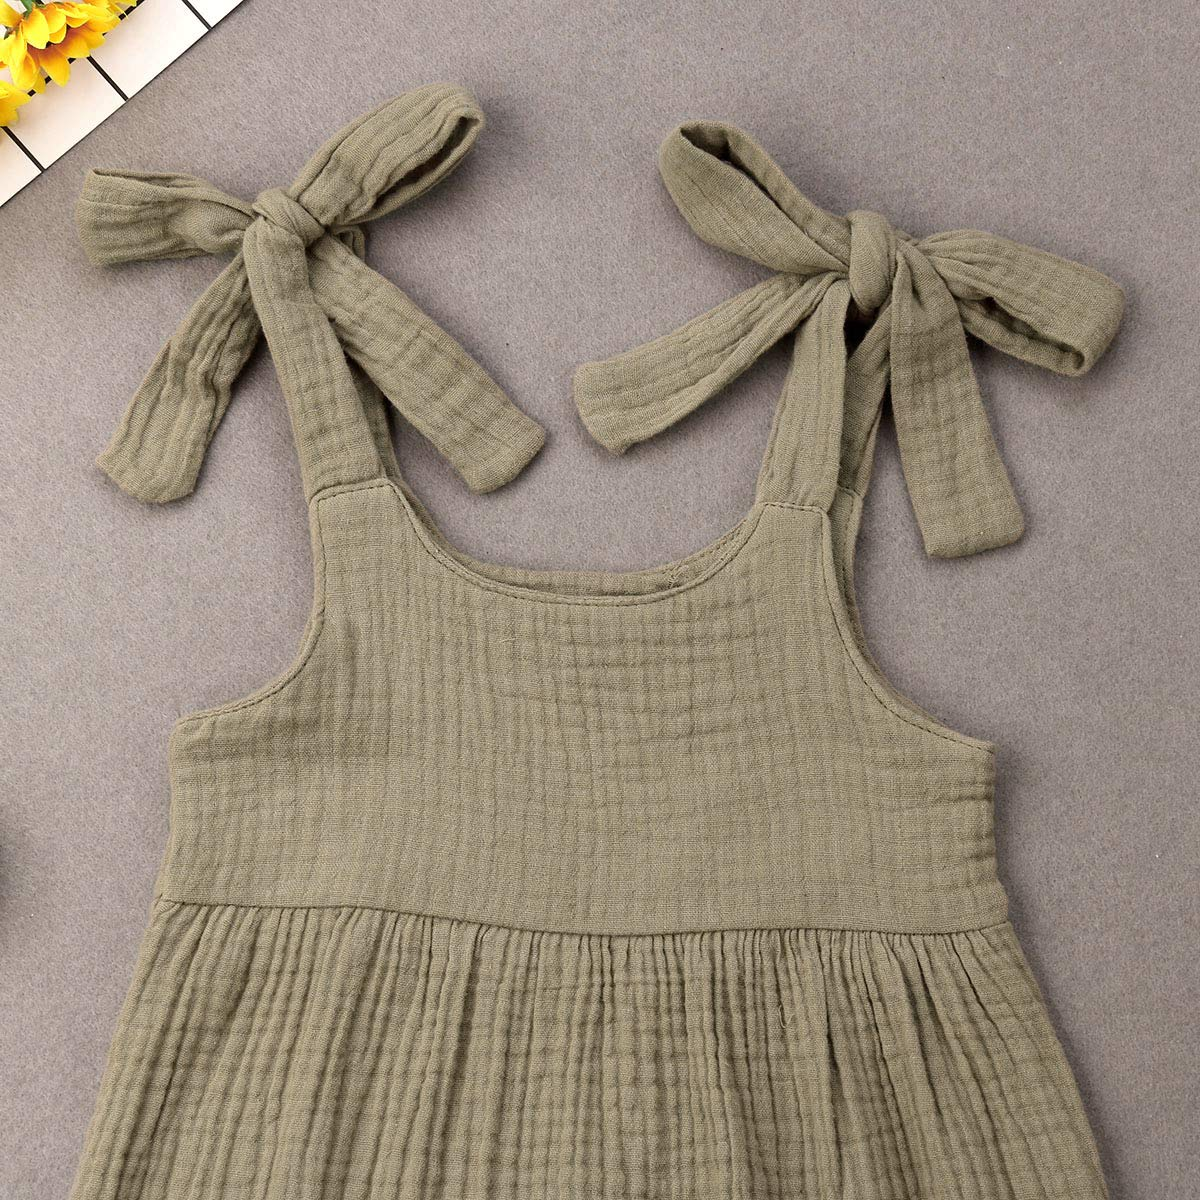 Infant Toddler Baby Girls Boys Sleeveless Strap Romper Jumpsuit Overalls Pants Outfits Summer